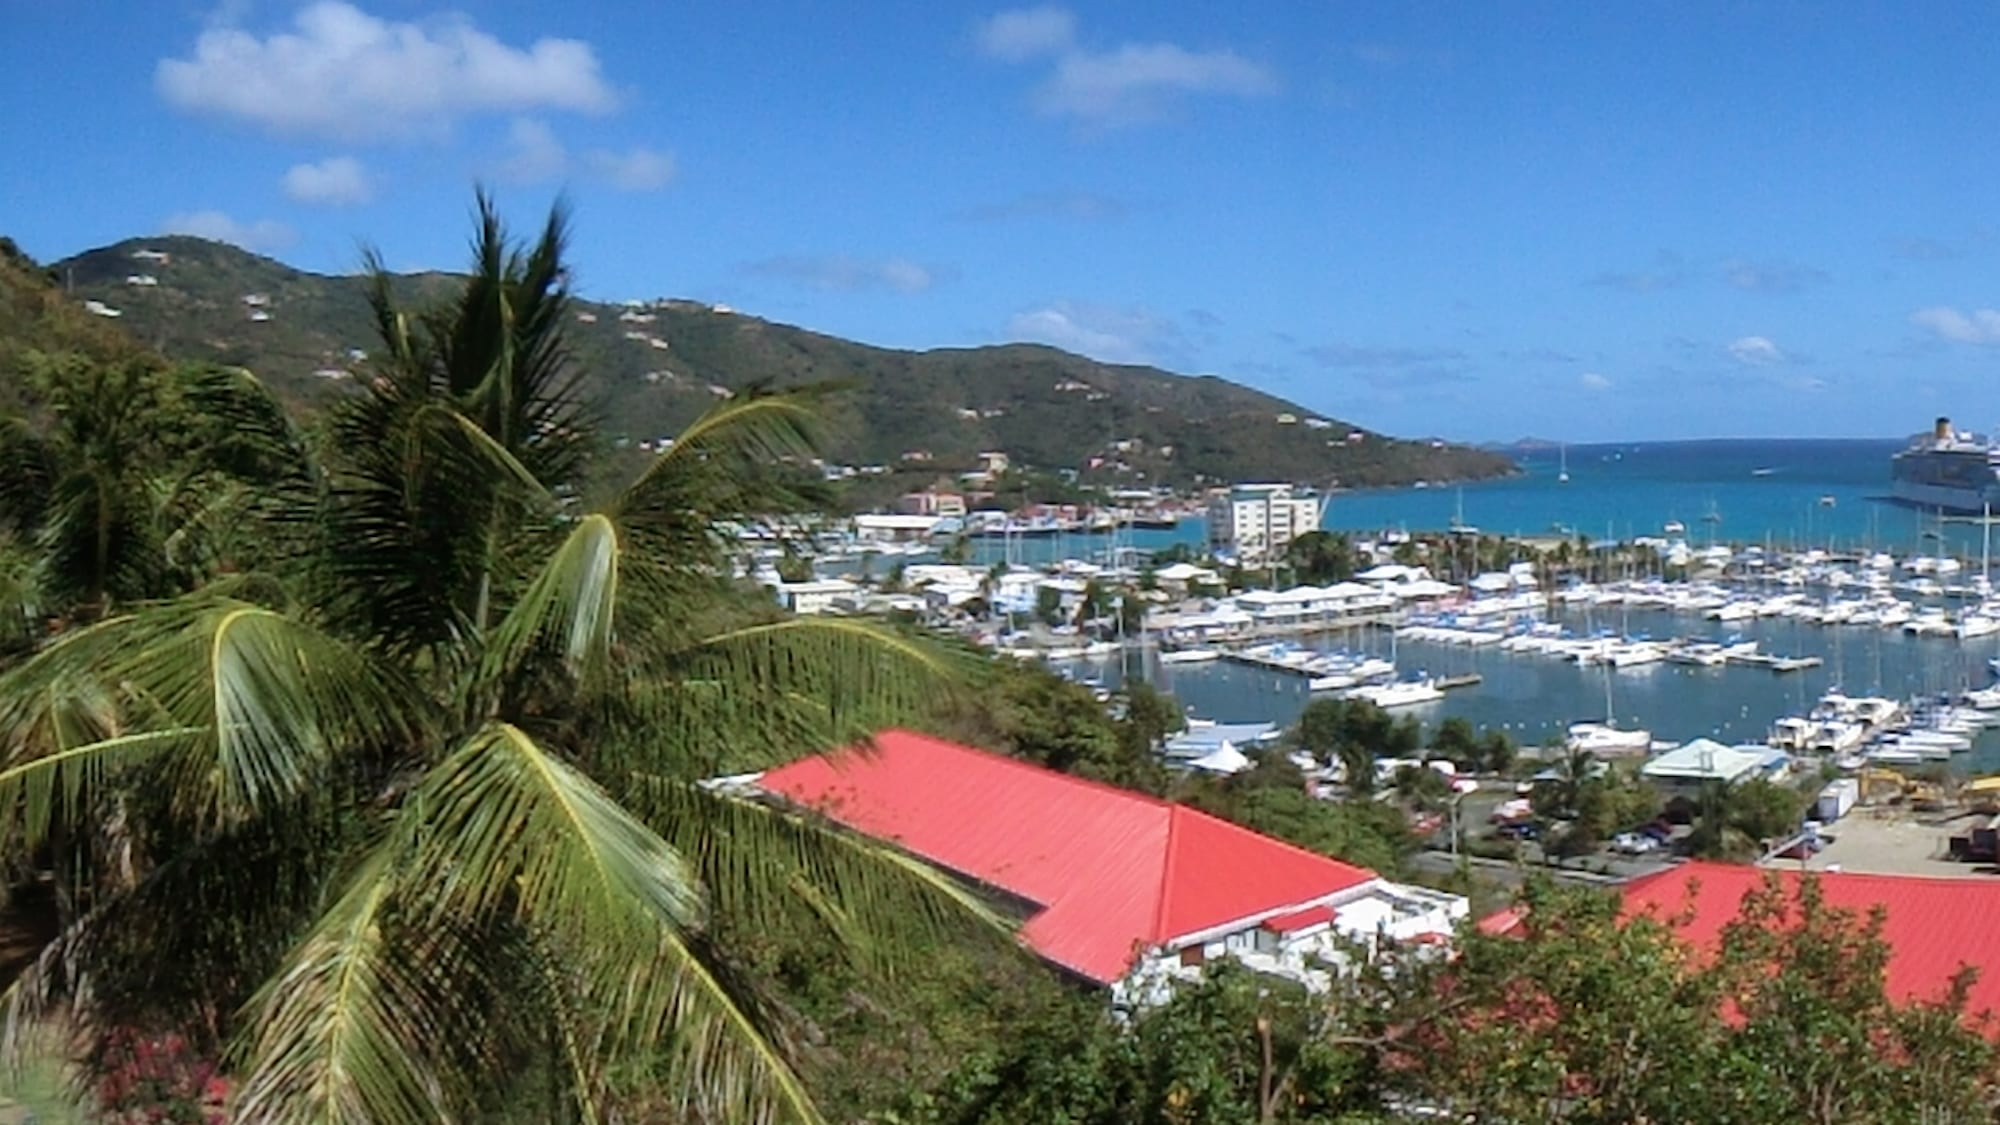 Commercial Property Valuation & Appraisal, Smiths Gore BVI Realty